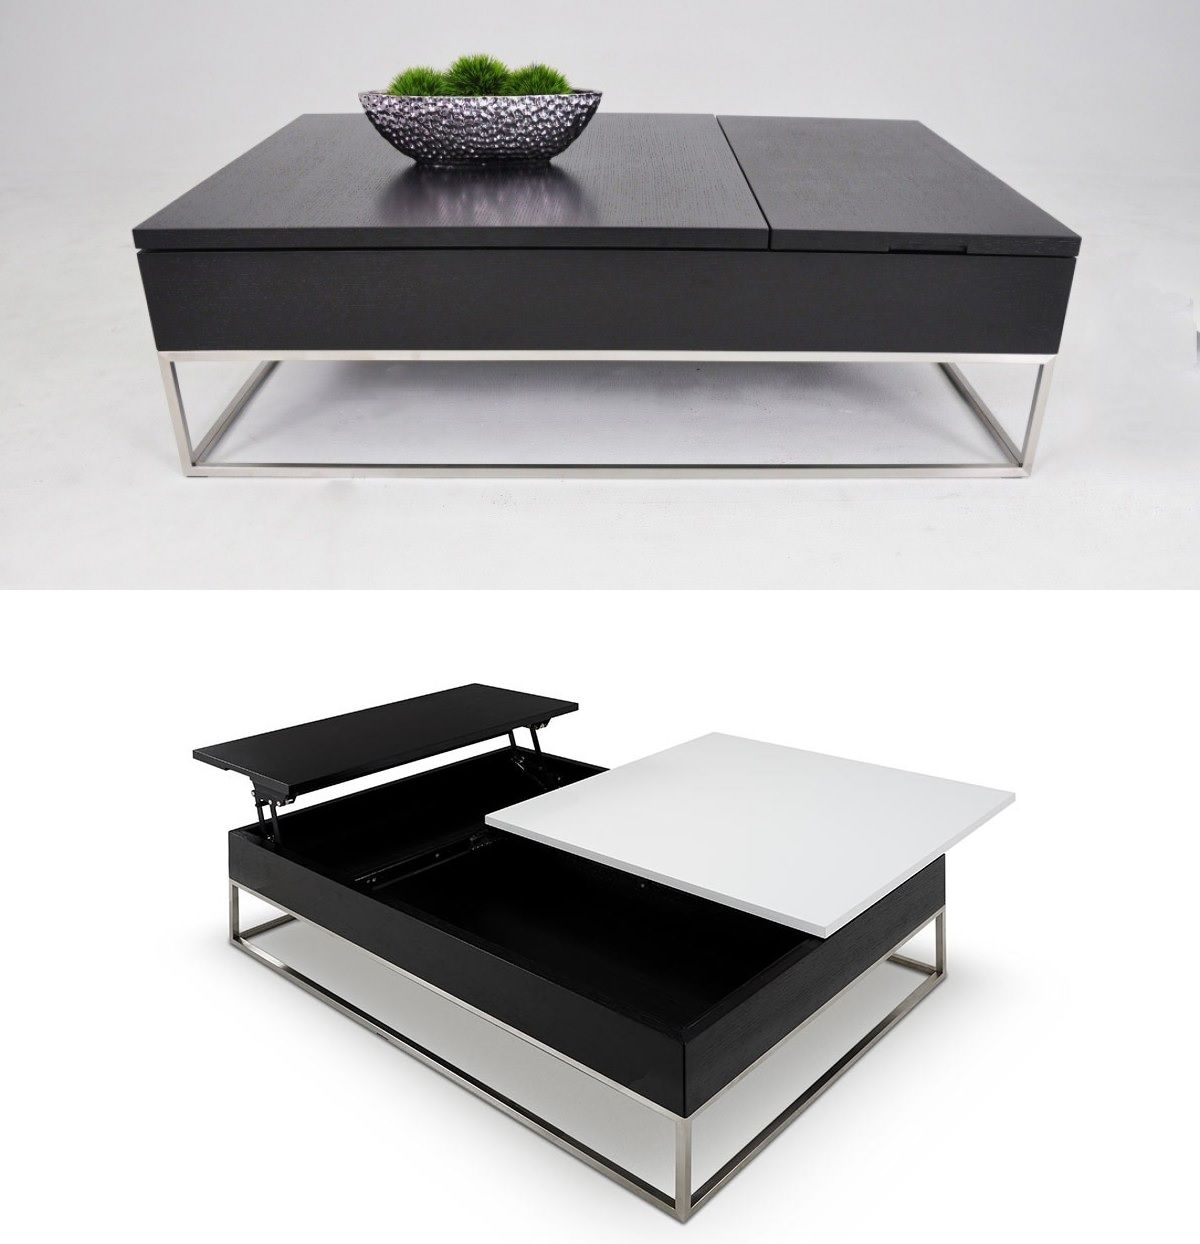 Storage table with an ingenious system